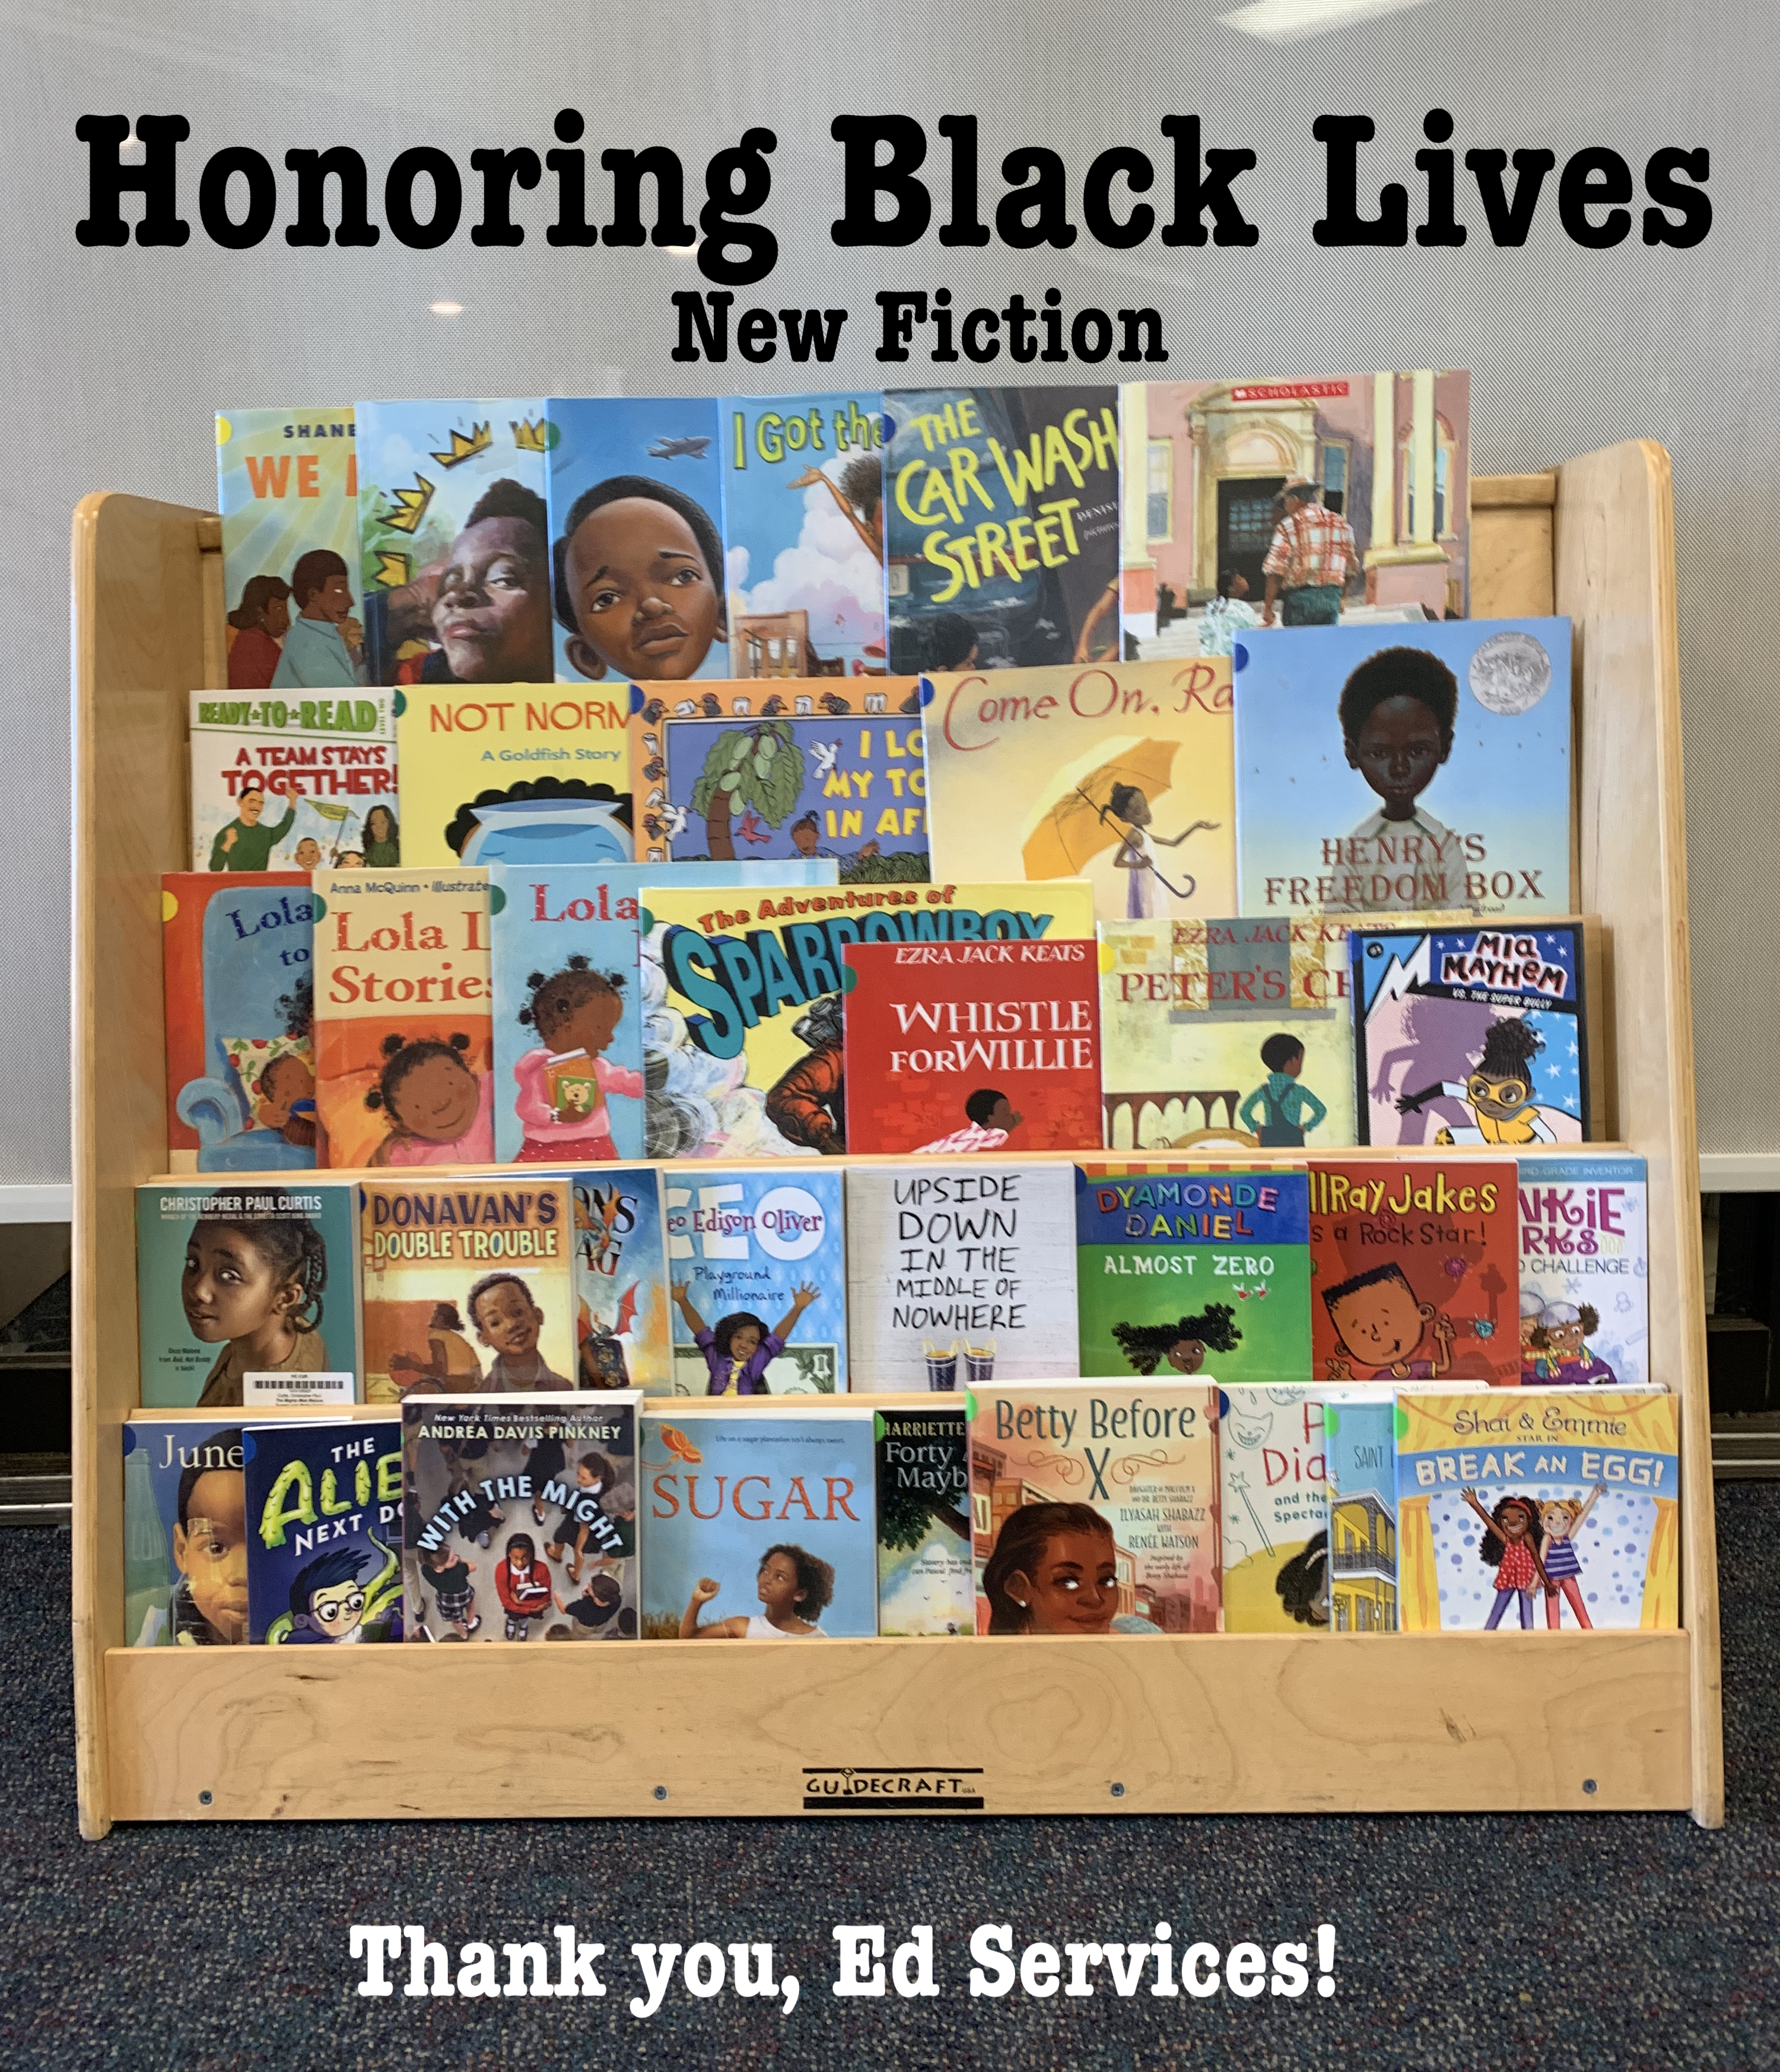 Honoring Black Lives New Fiction